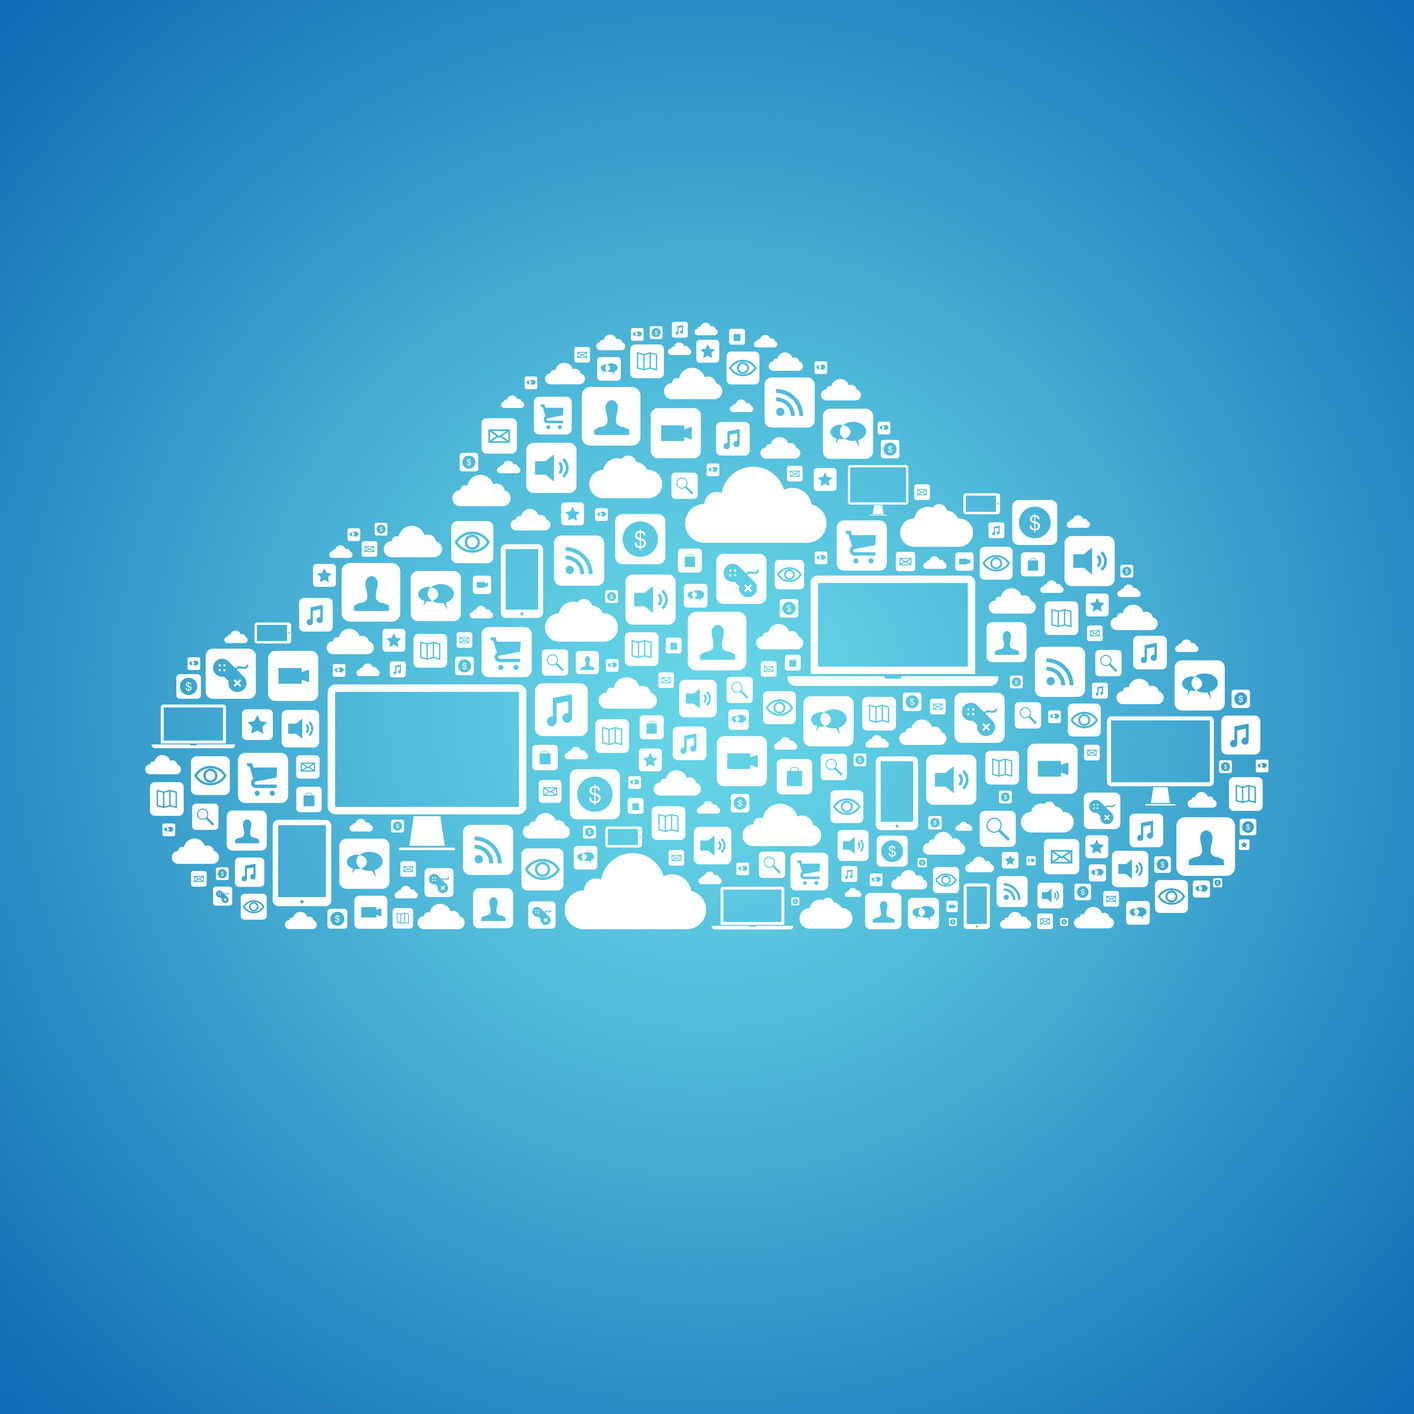 photodune-4562357-cloud-computing-concept-m